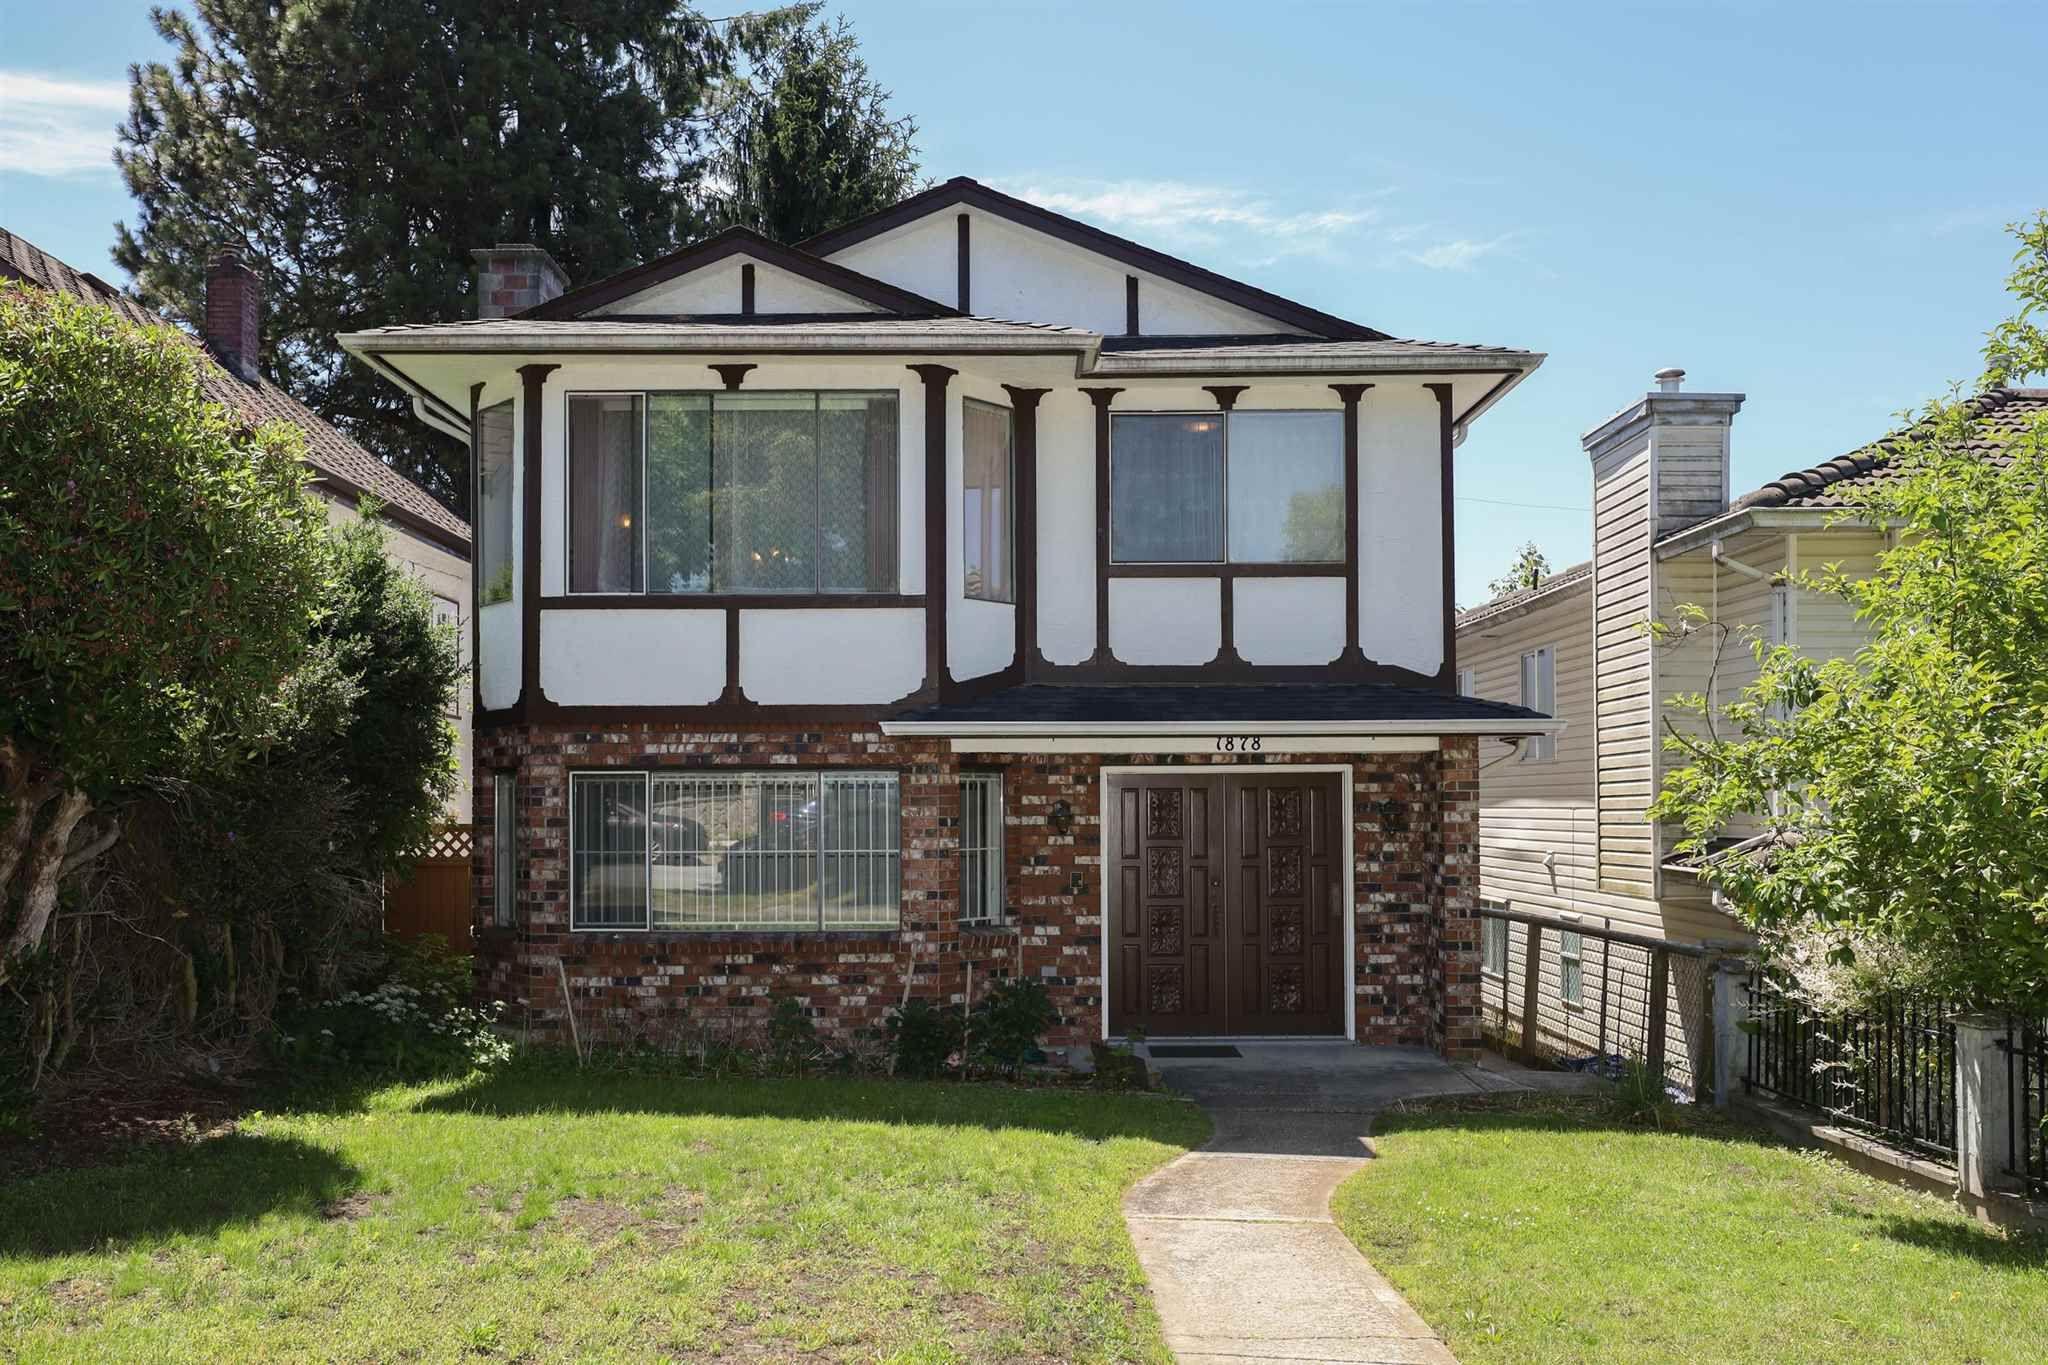 Main Photo: 1878 E 51ST Avenue in Vancouver: Killarney VE House for sale (Vancouver East)  : MLS®# R2596182